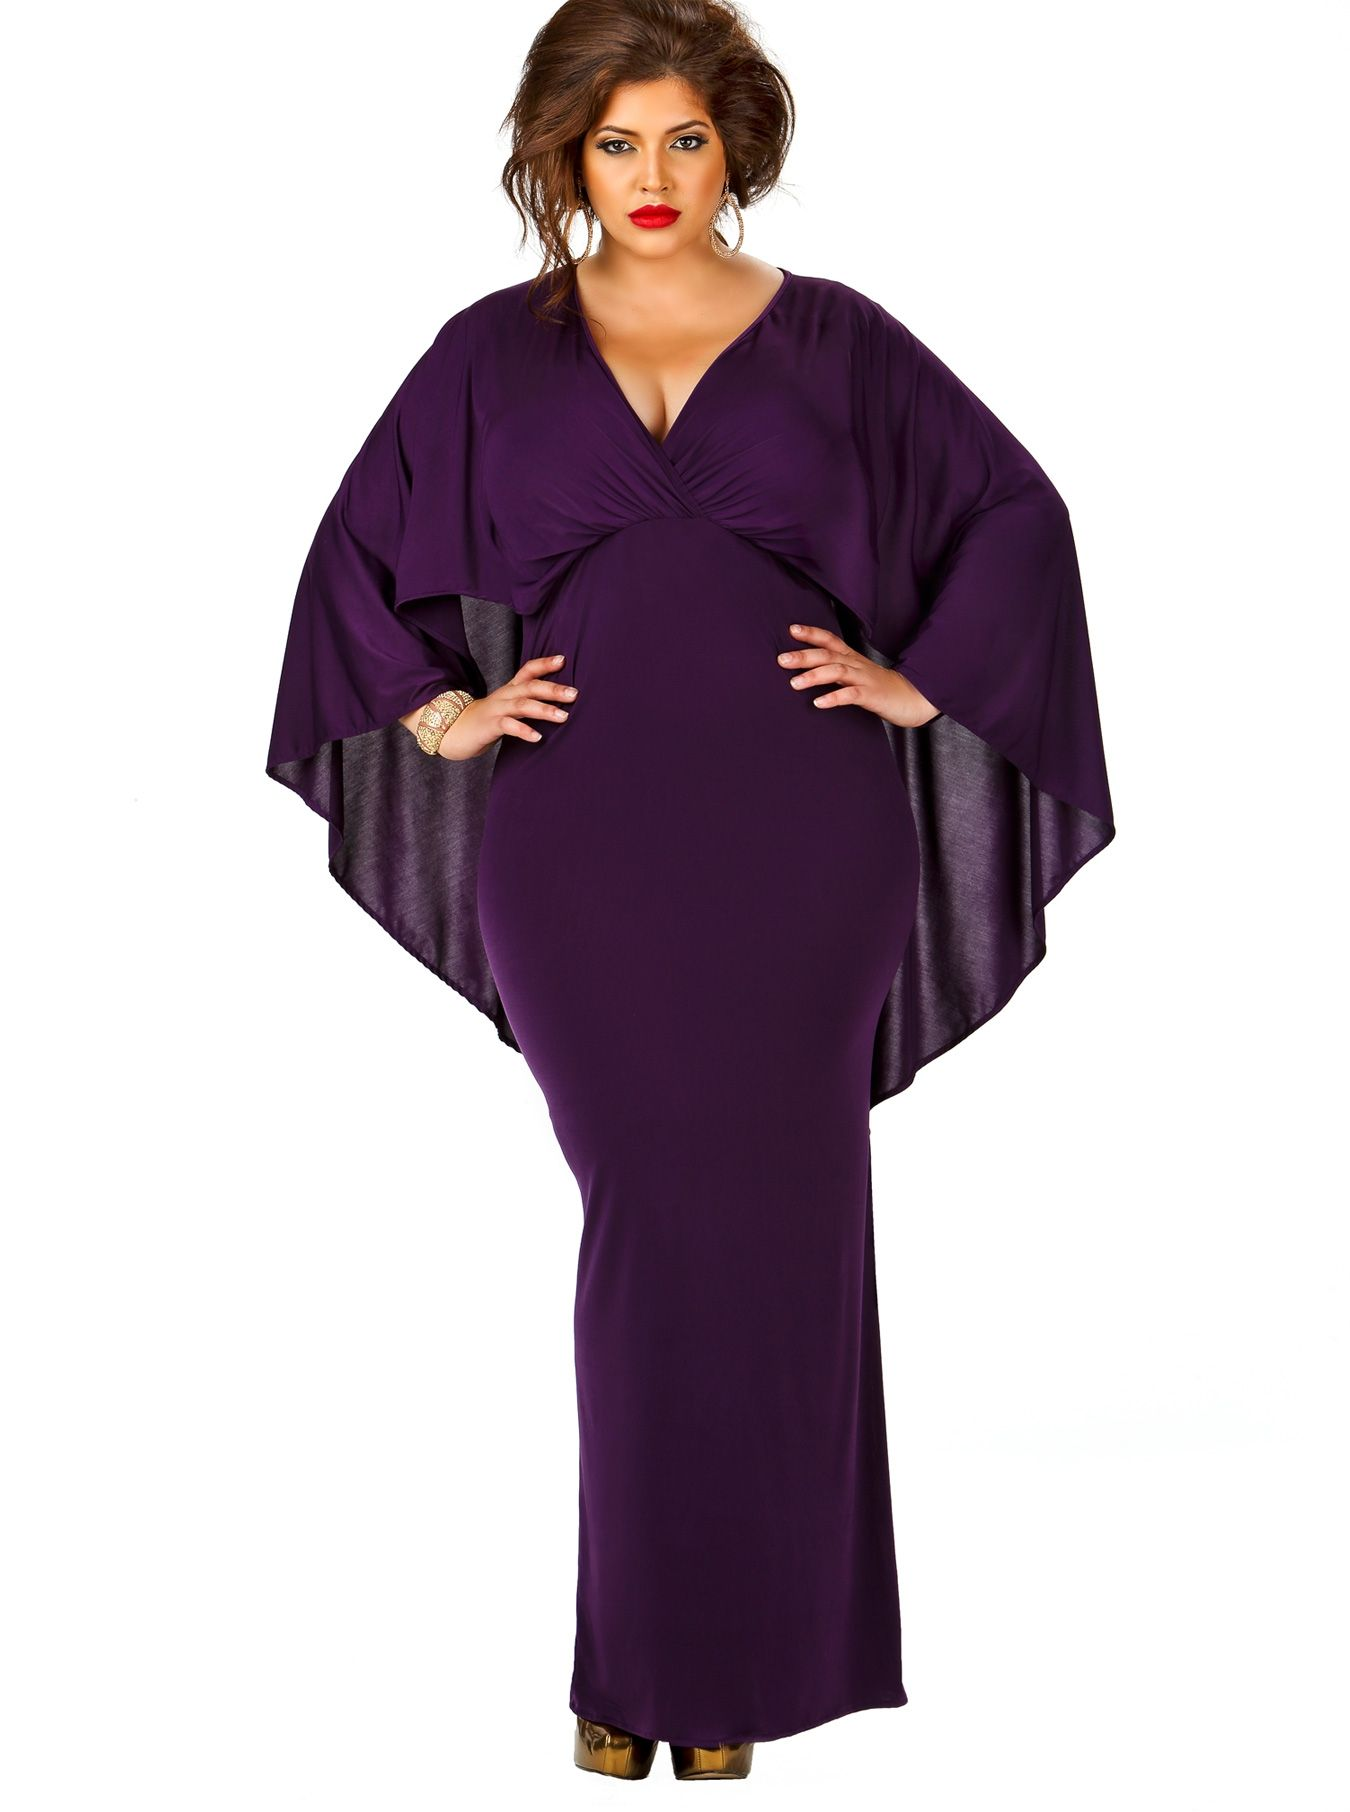 d18577486e1a Purple Cape-back maxi dress with long sleeves and surplice ruched bodice.  by Monif C.